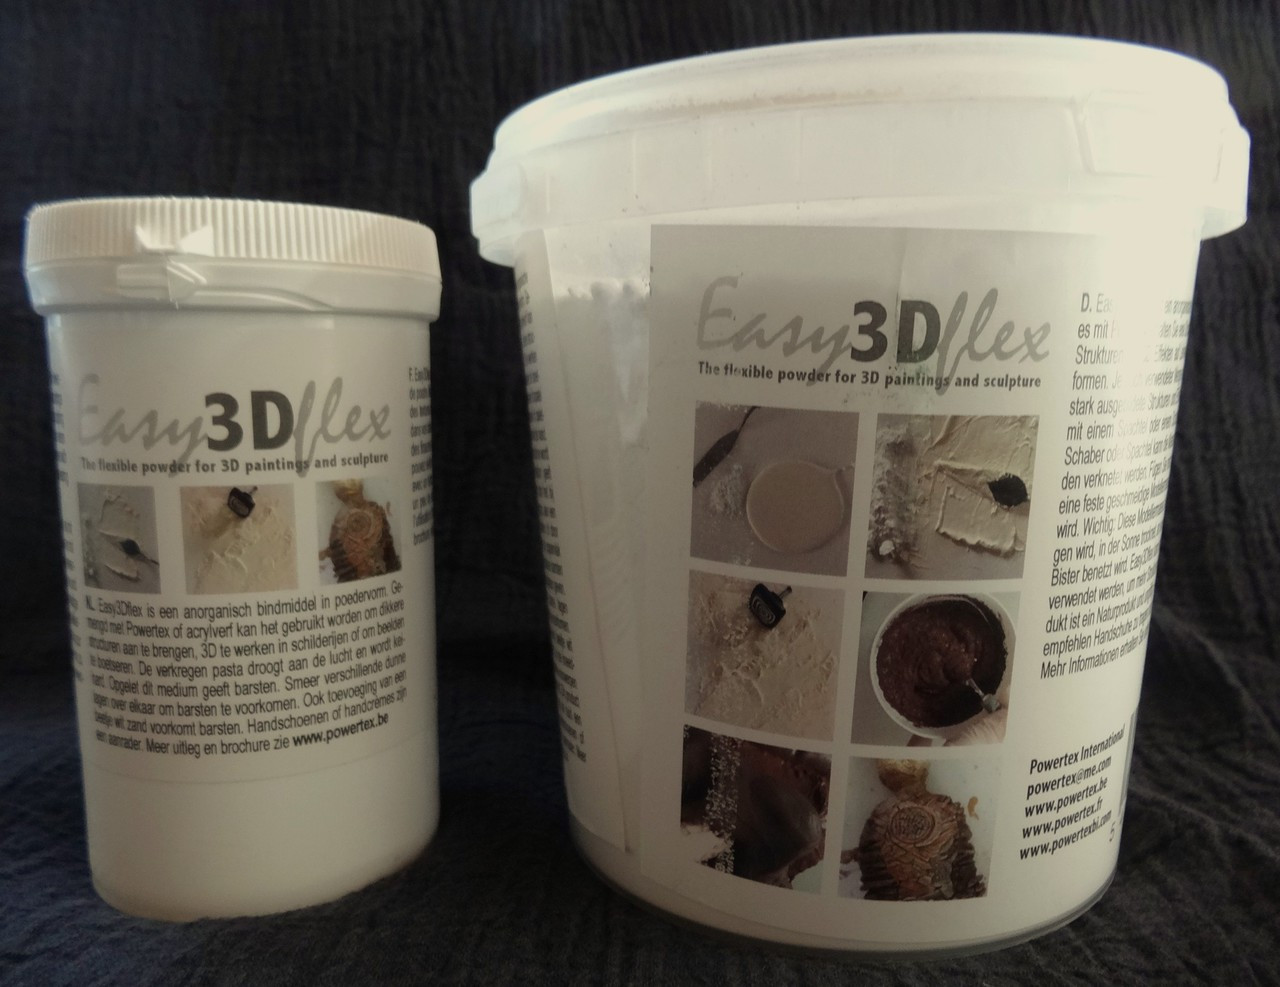 Easy3Dflex comes in two sizes-250g and 1kg